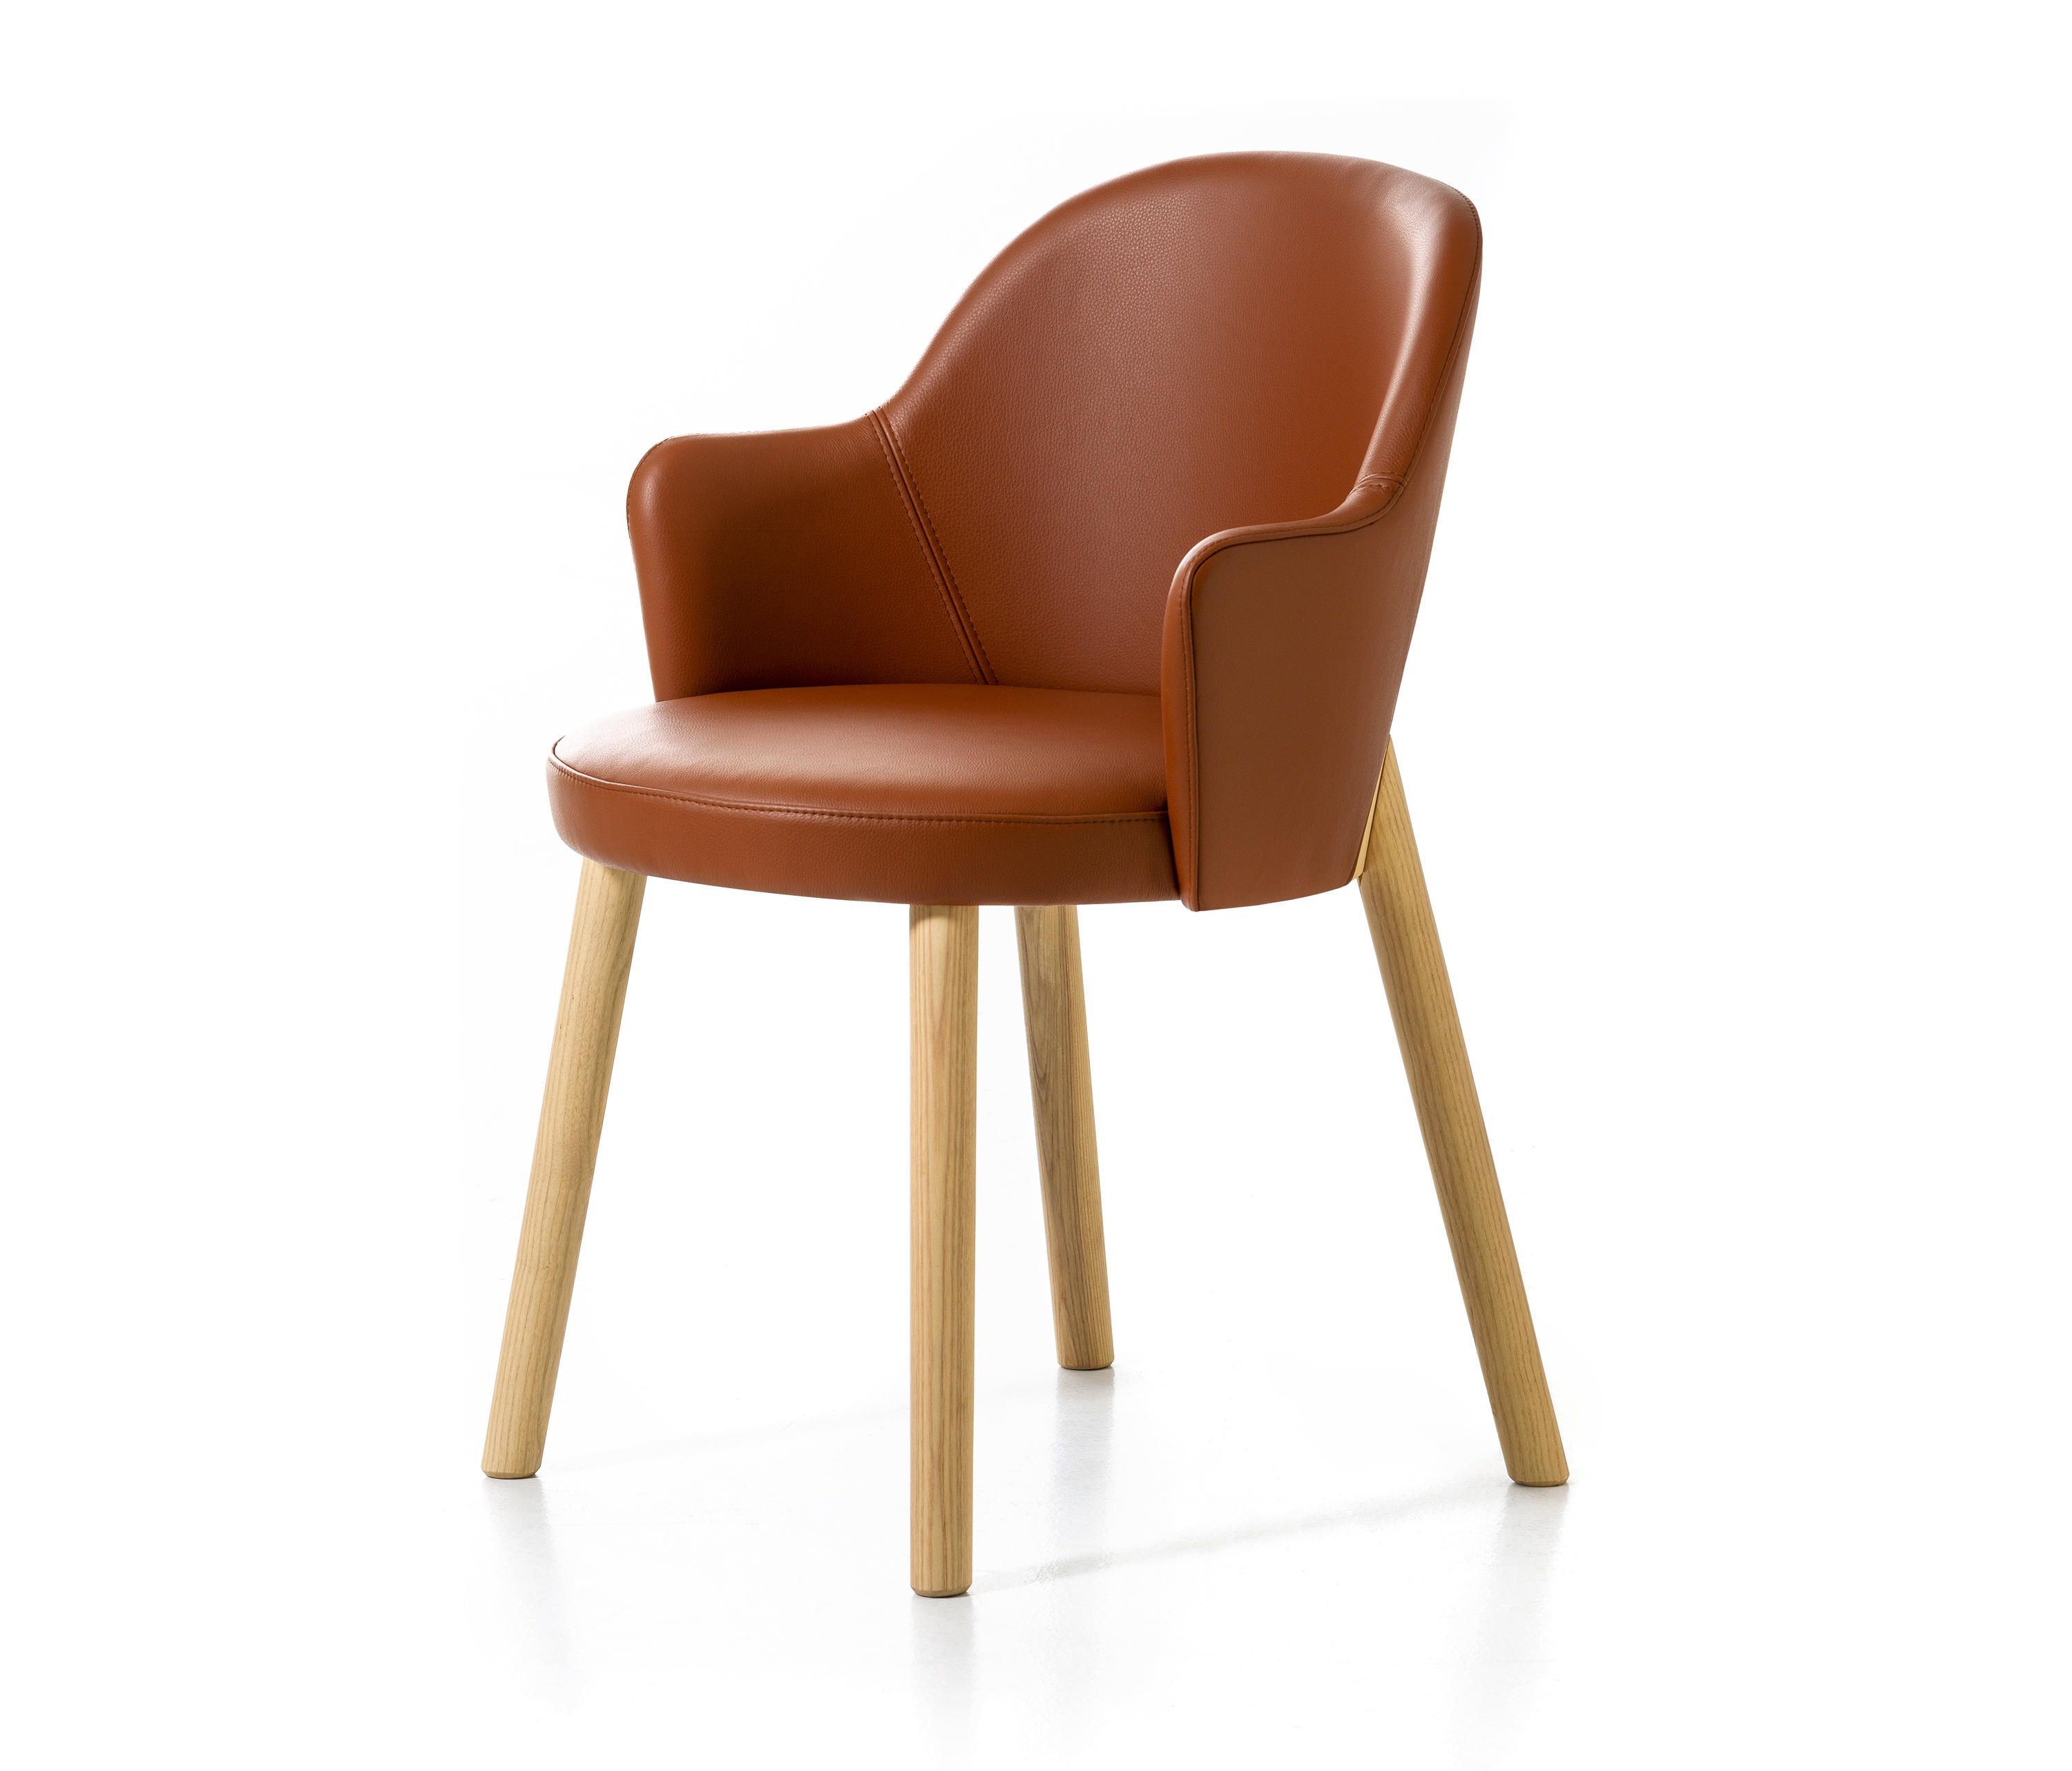 Doc Ar Chairs From Arrmet Srl Architonic